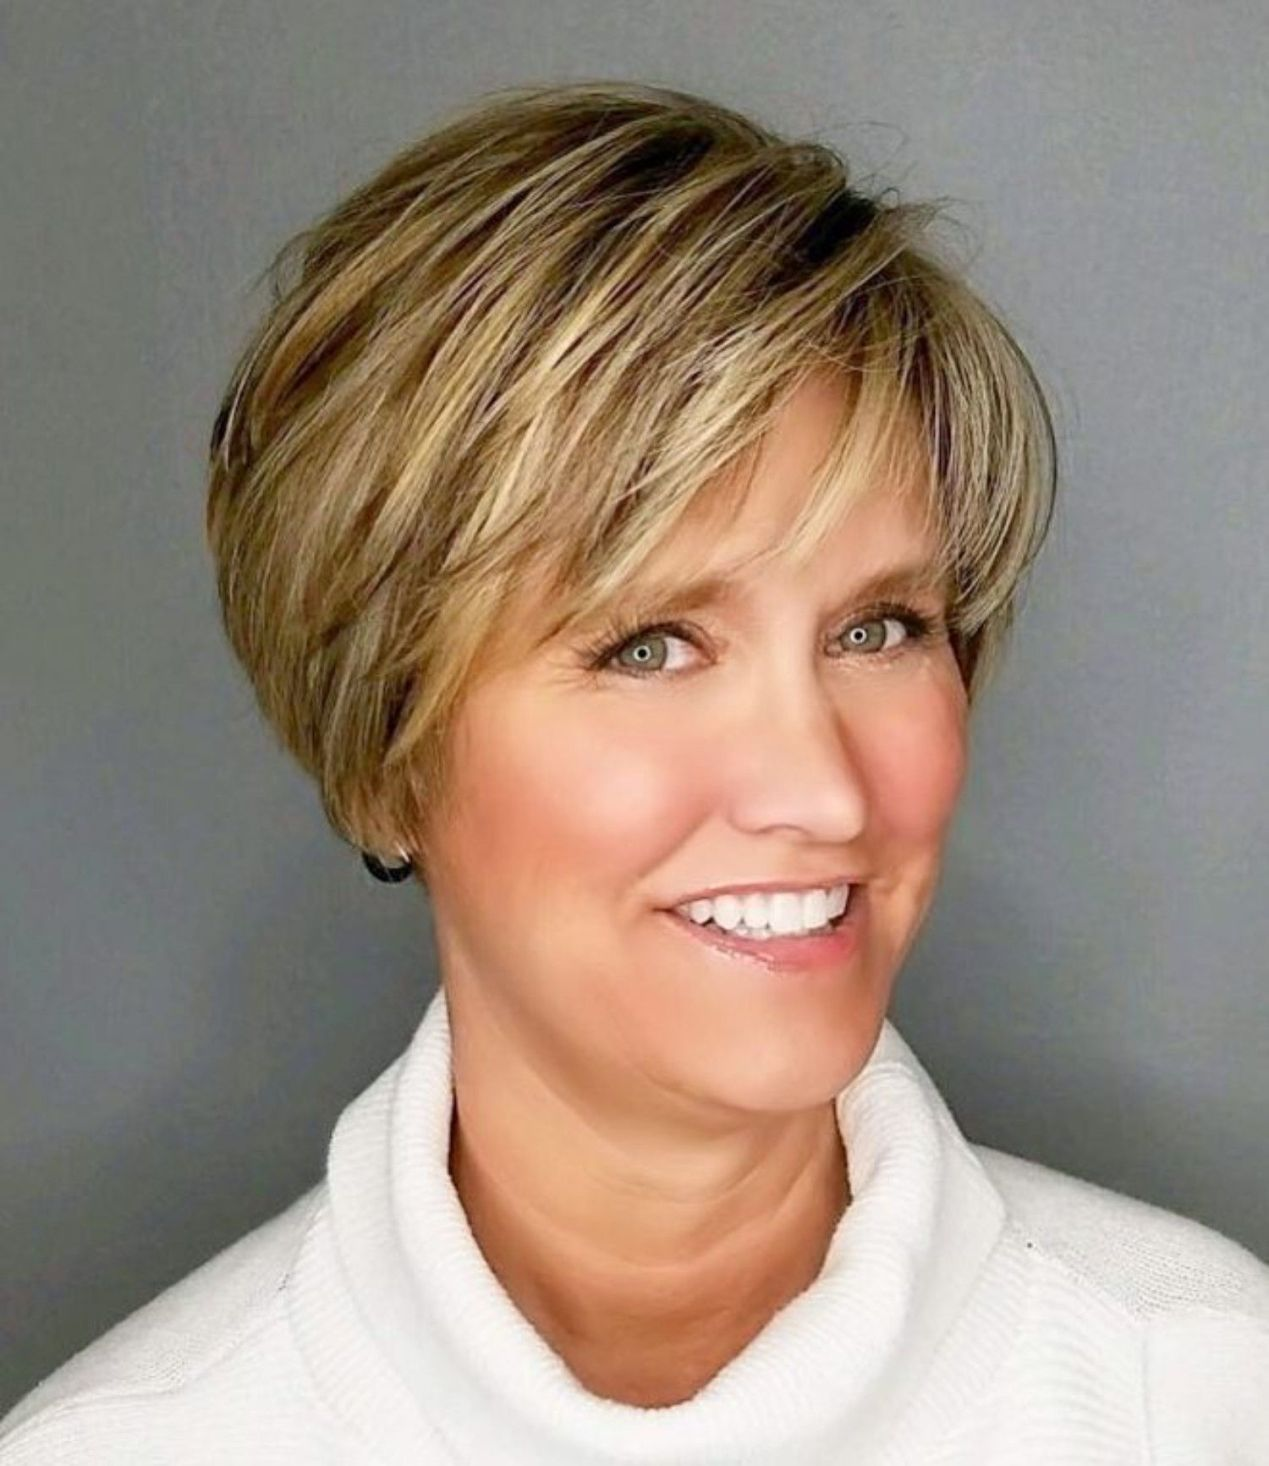 90 Classy and Simple Short Hairstyles for Women over 50 in ...